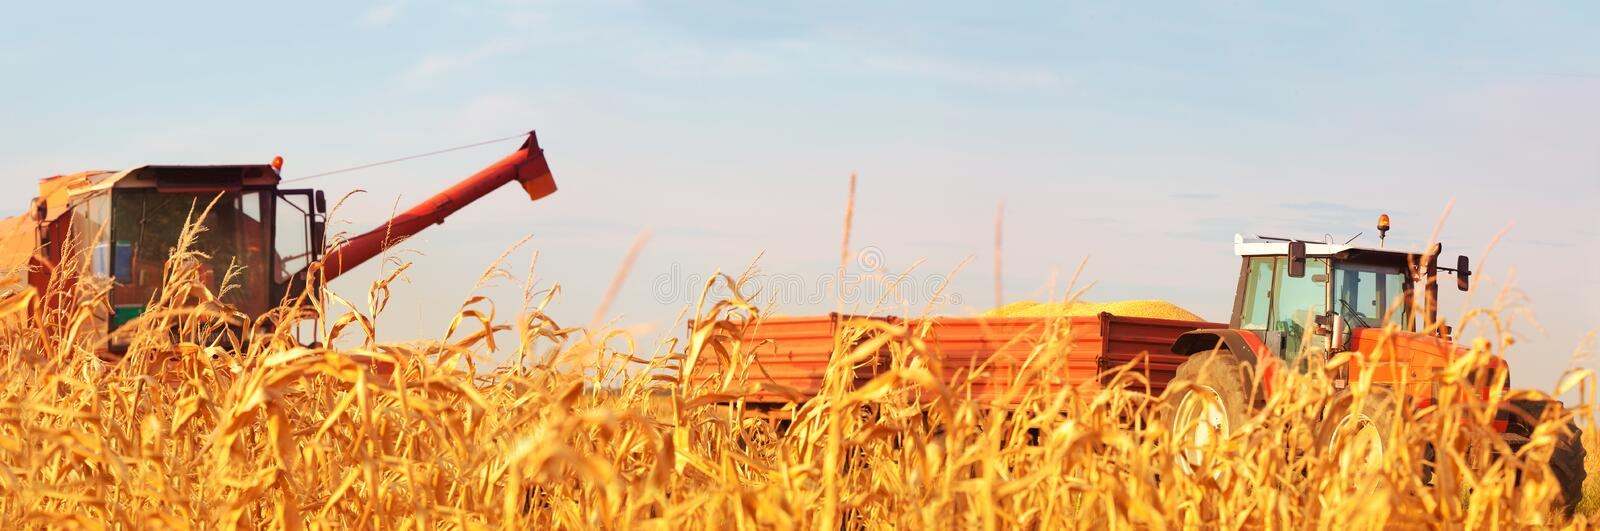 Combine Operator Harvesting Corn on the Field in Sunny Day royalty free stock image